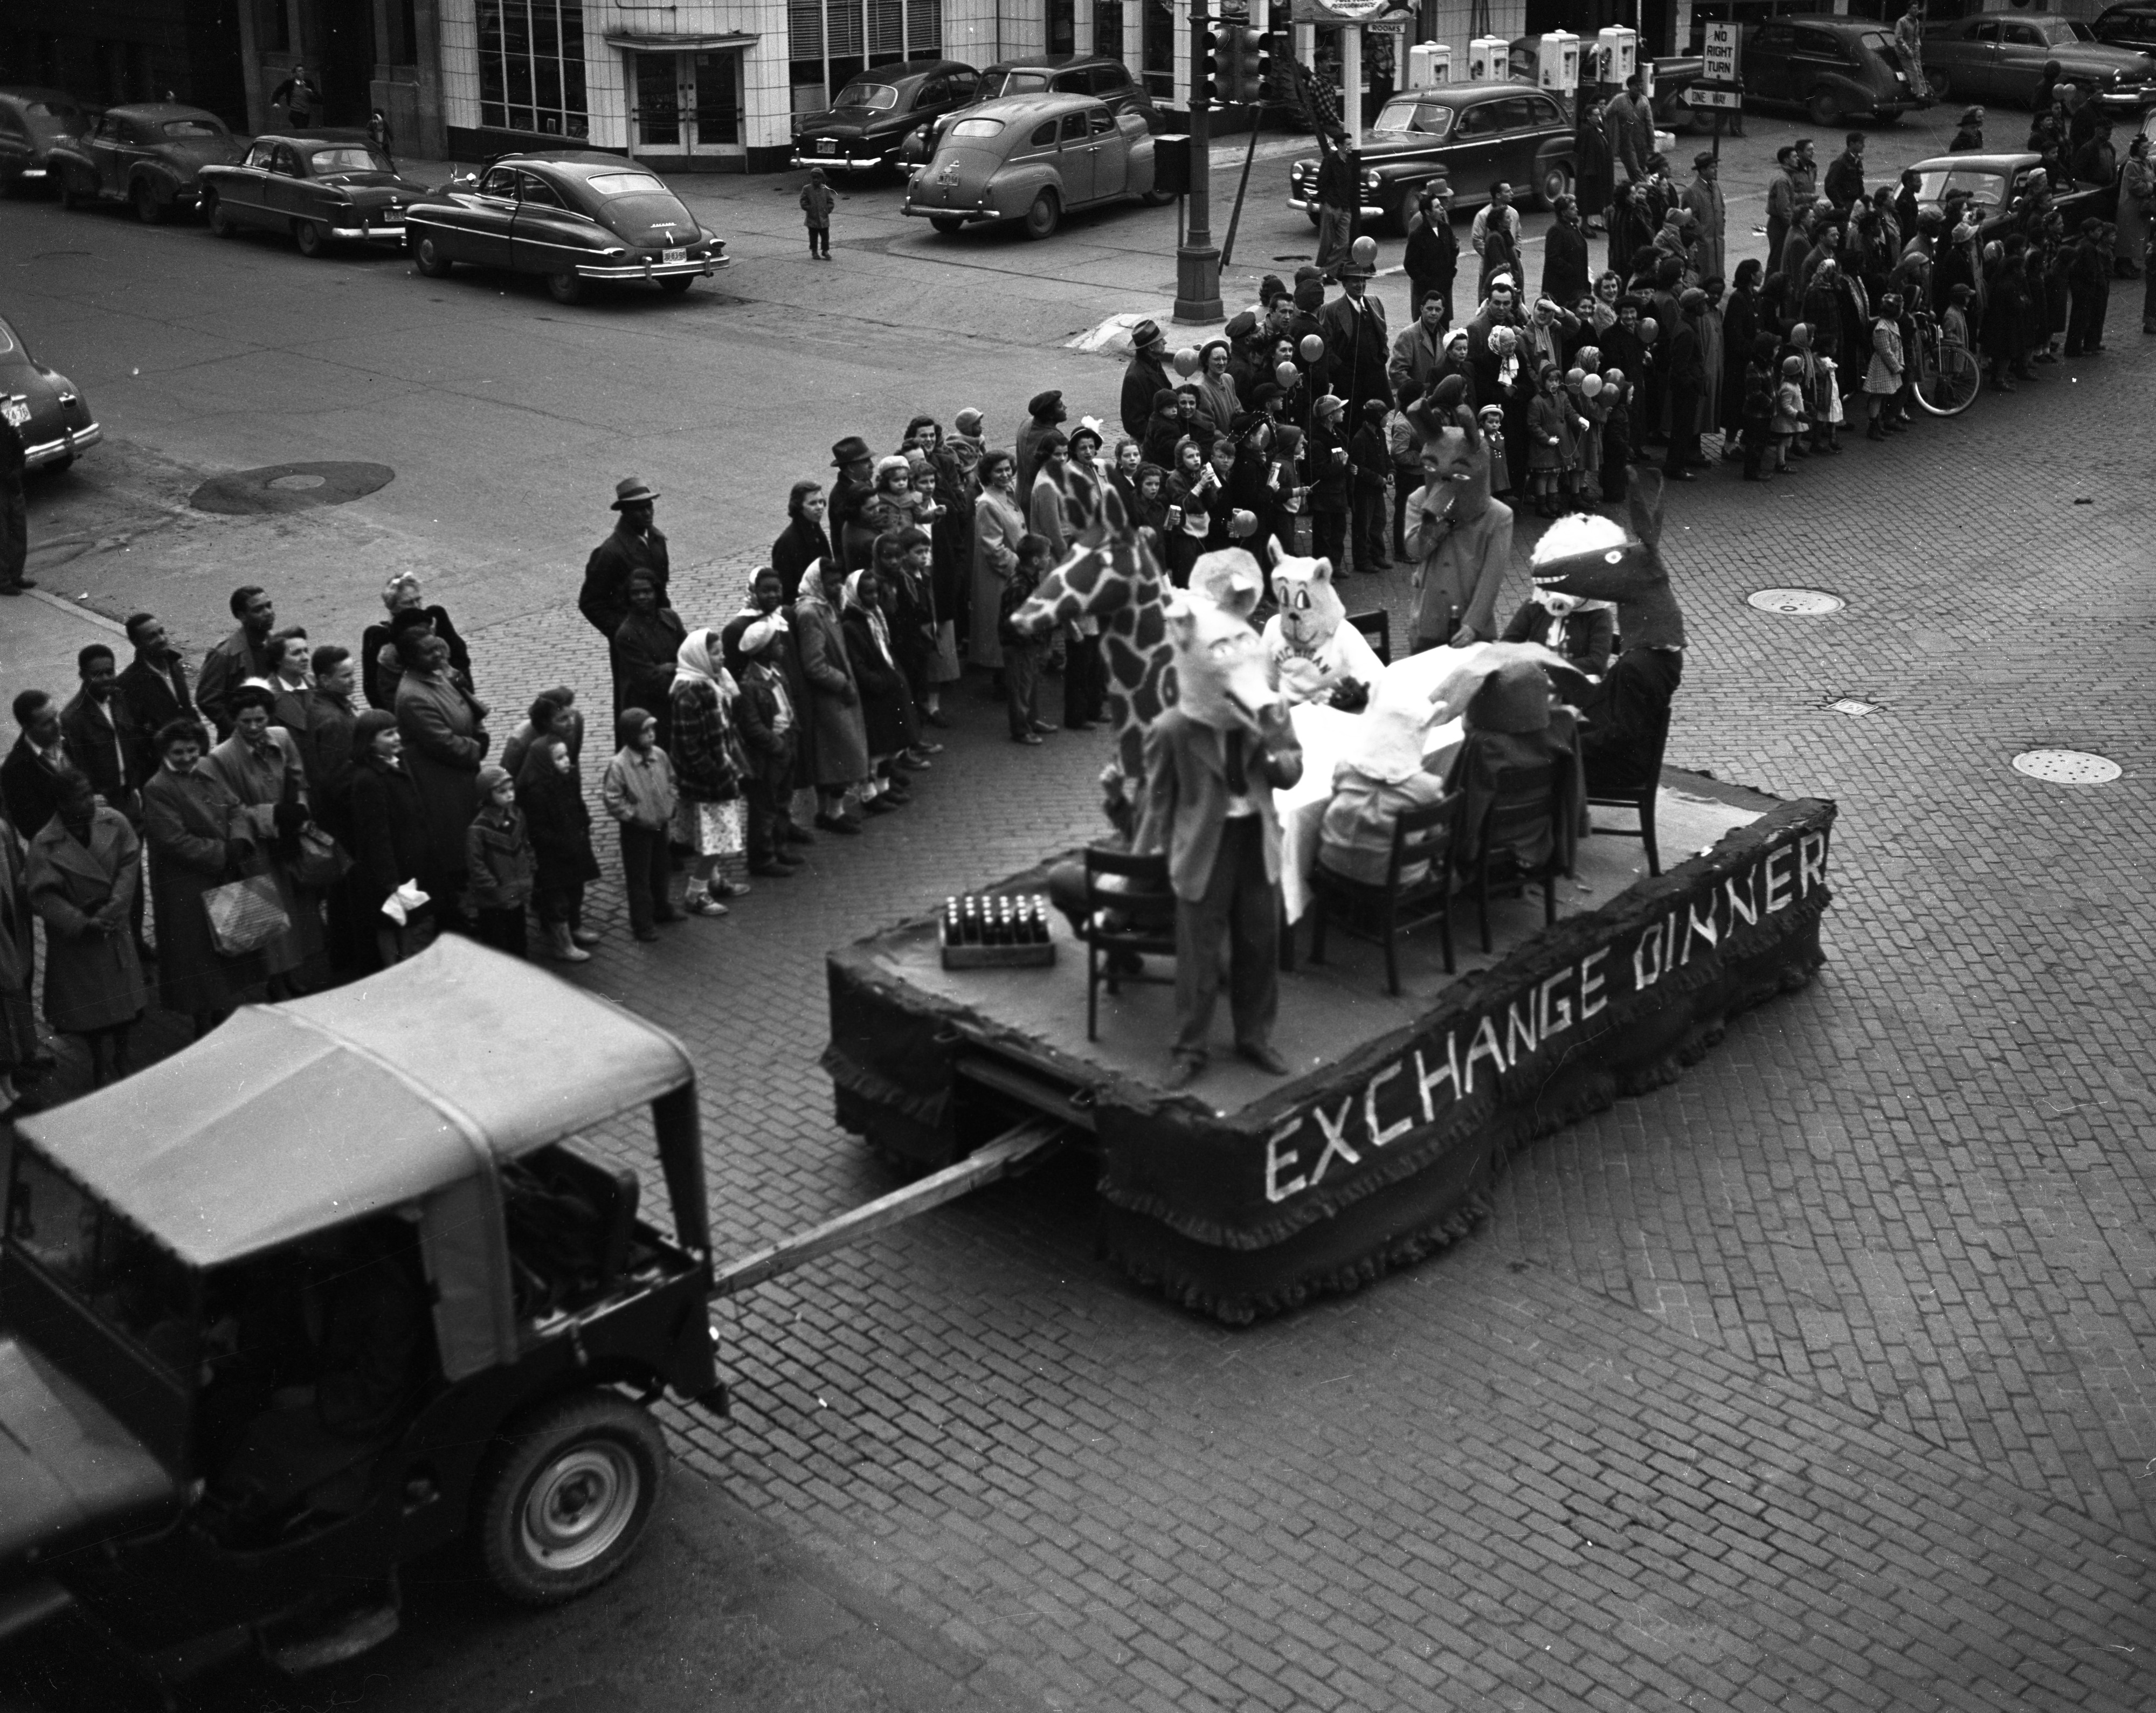 U-M Michigras Parade, April 1950 image